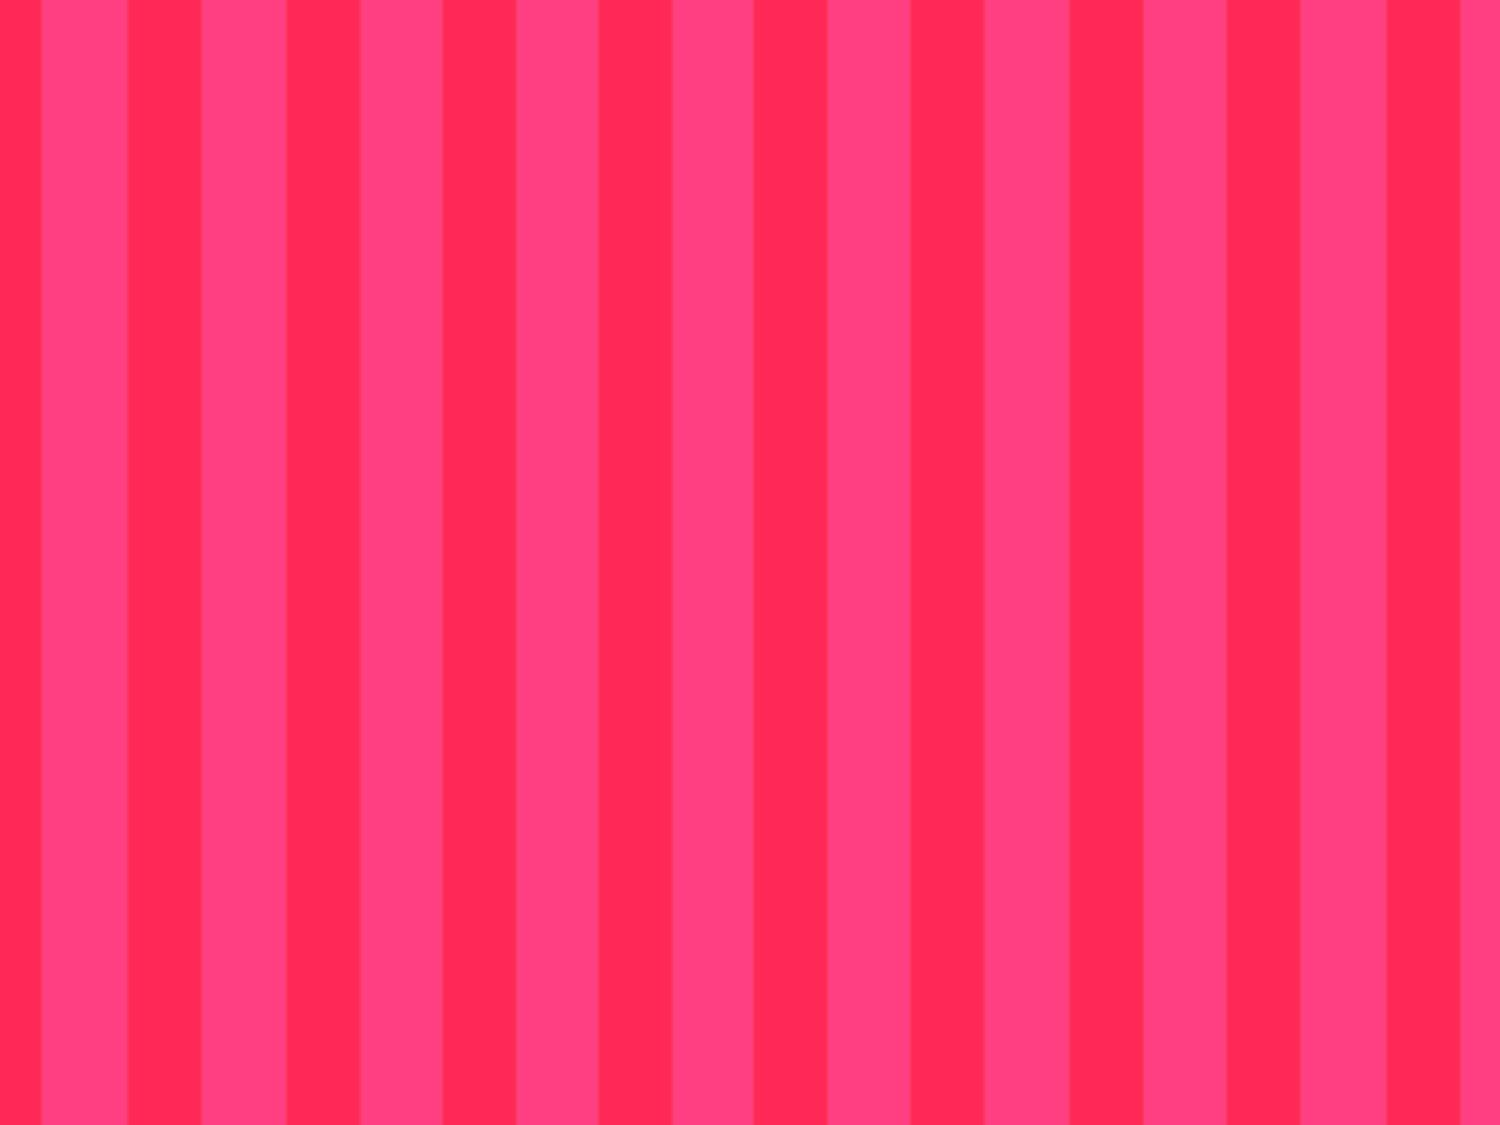 Pink And Blue Striped Wallpaper 2989 Wallpaper: Bright Stripe Background Images HQ Free Download